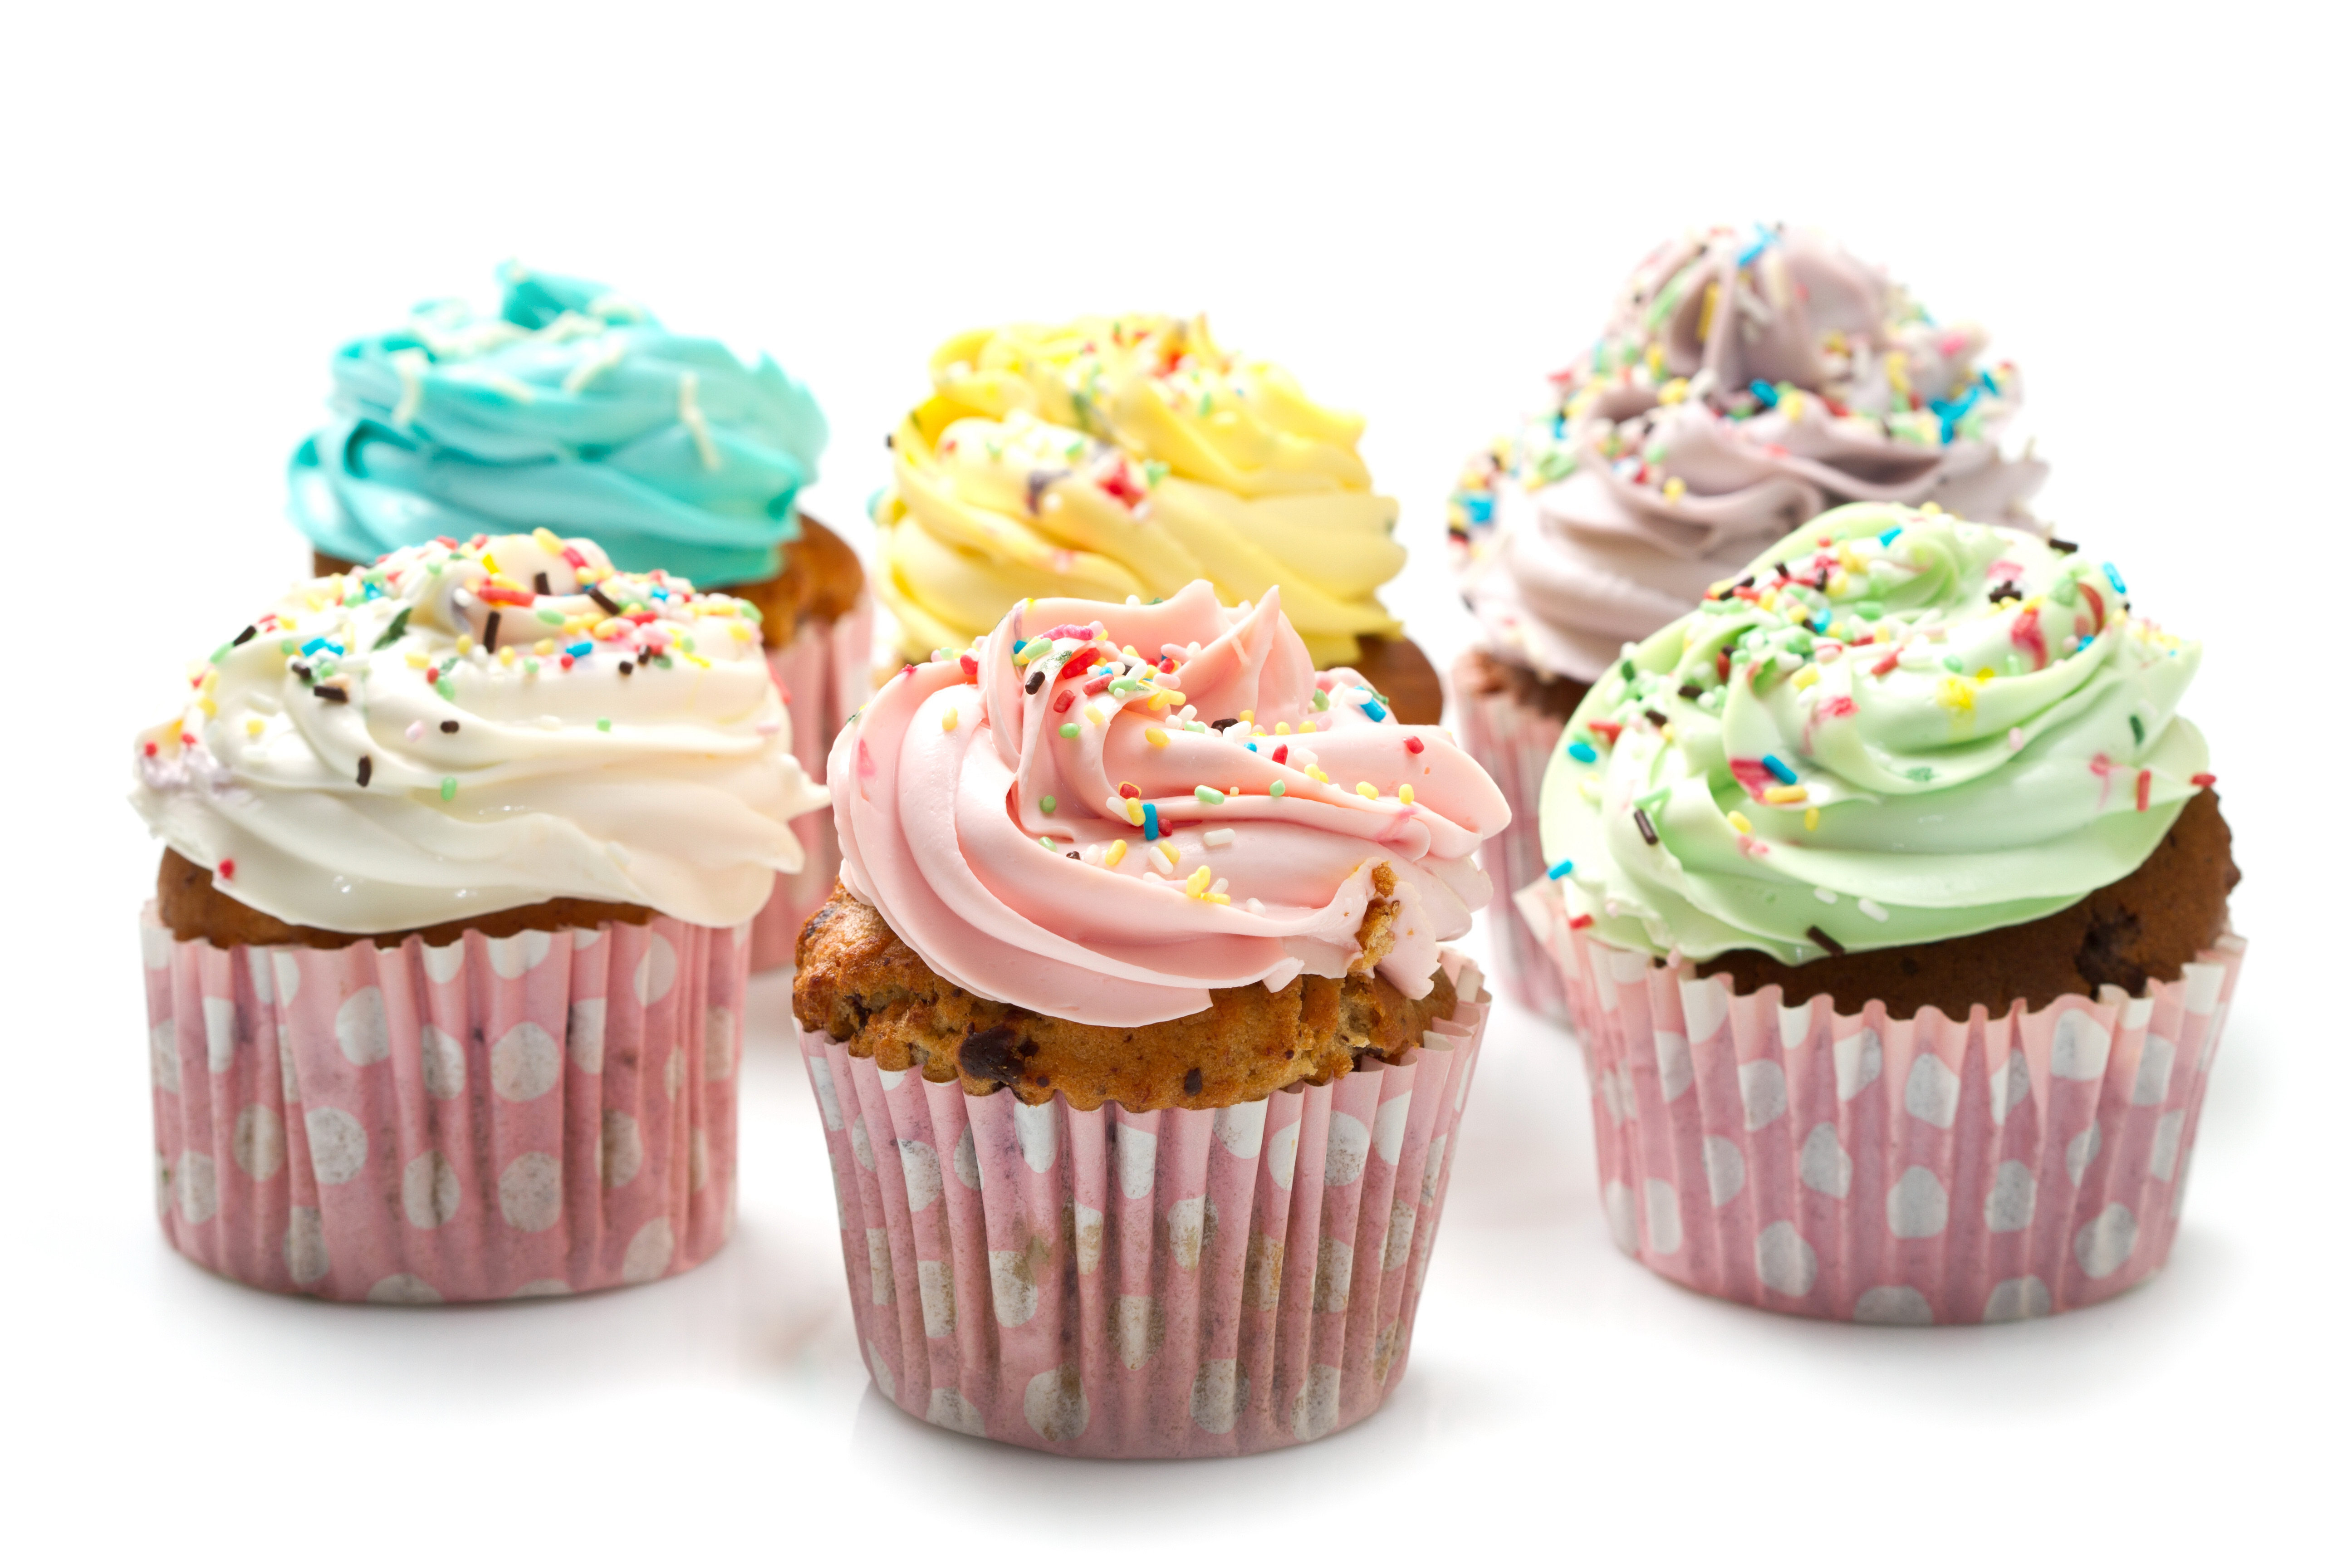 178 Cupcake HD Wallpapers | Backgrounds - Wallpaper Abyss